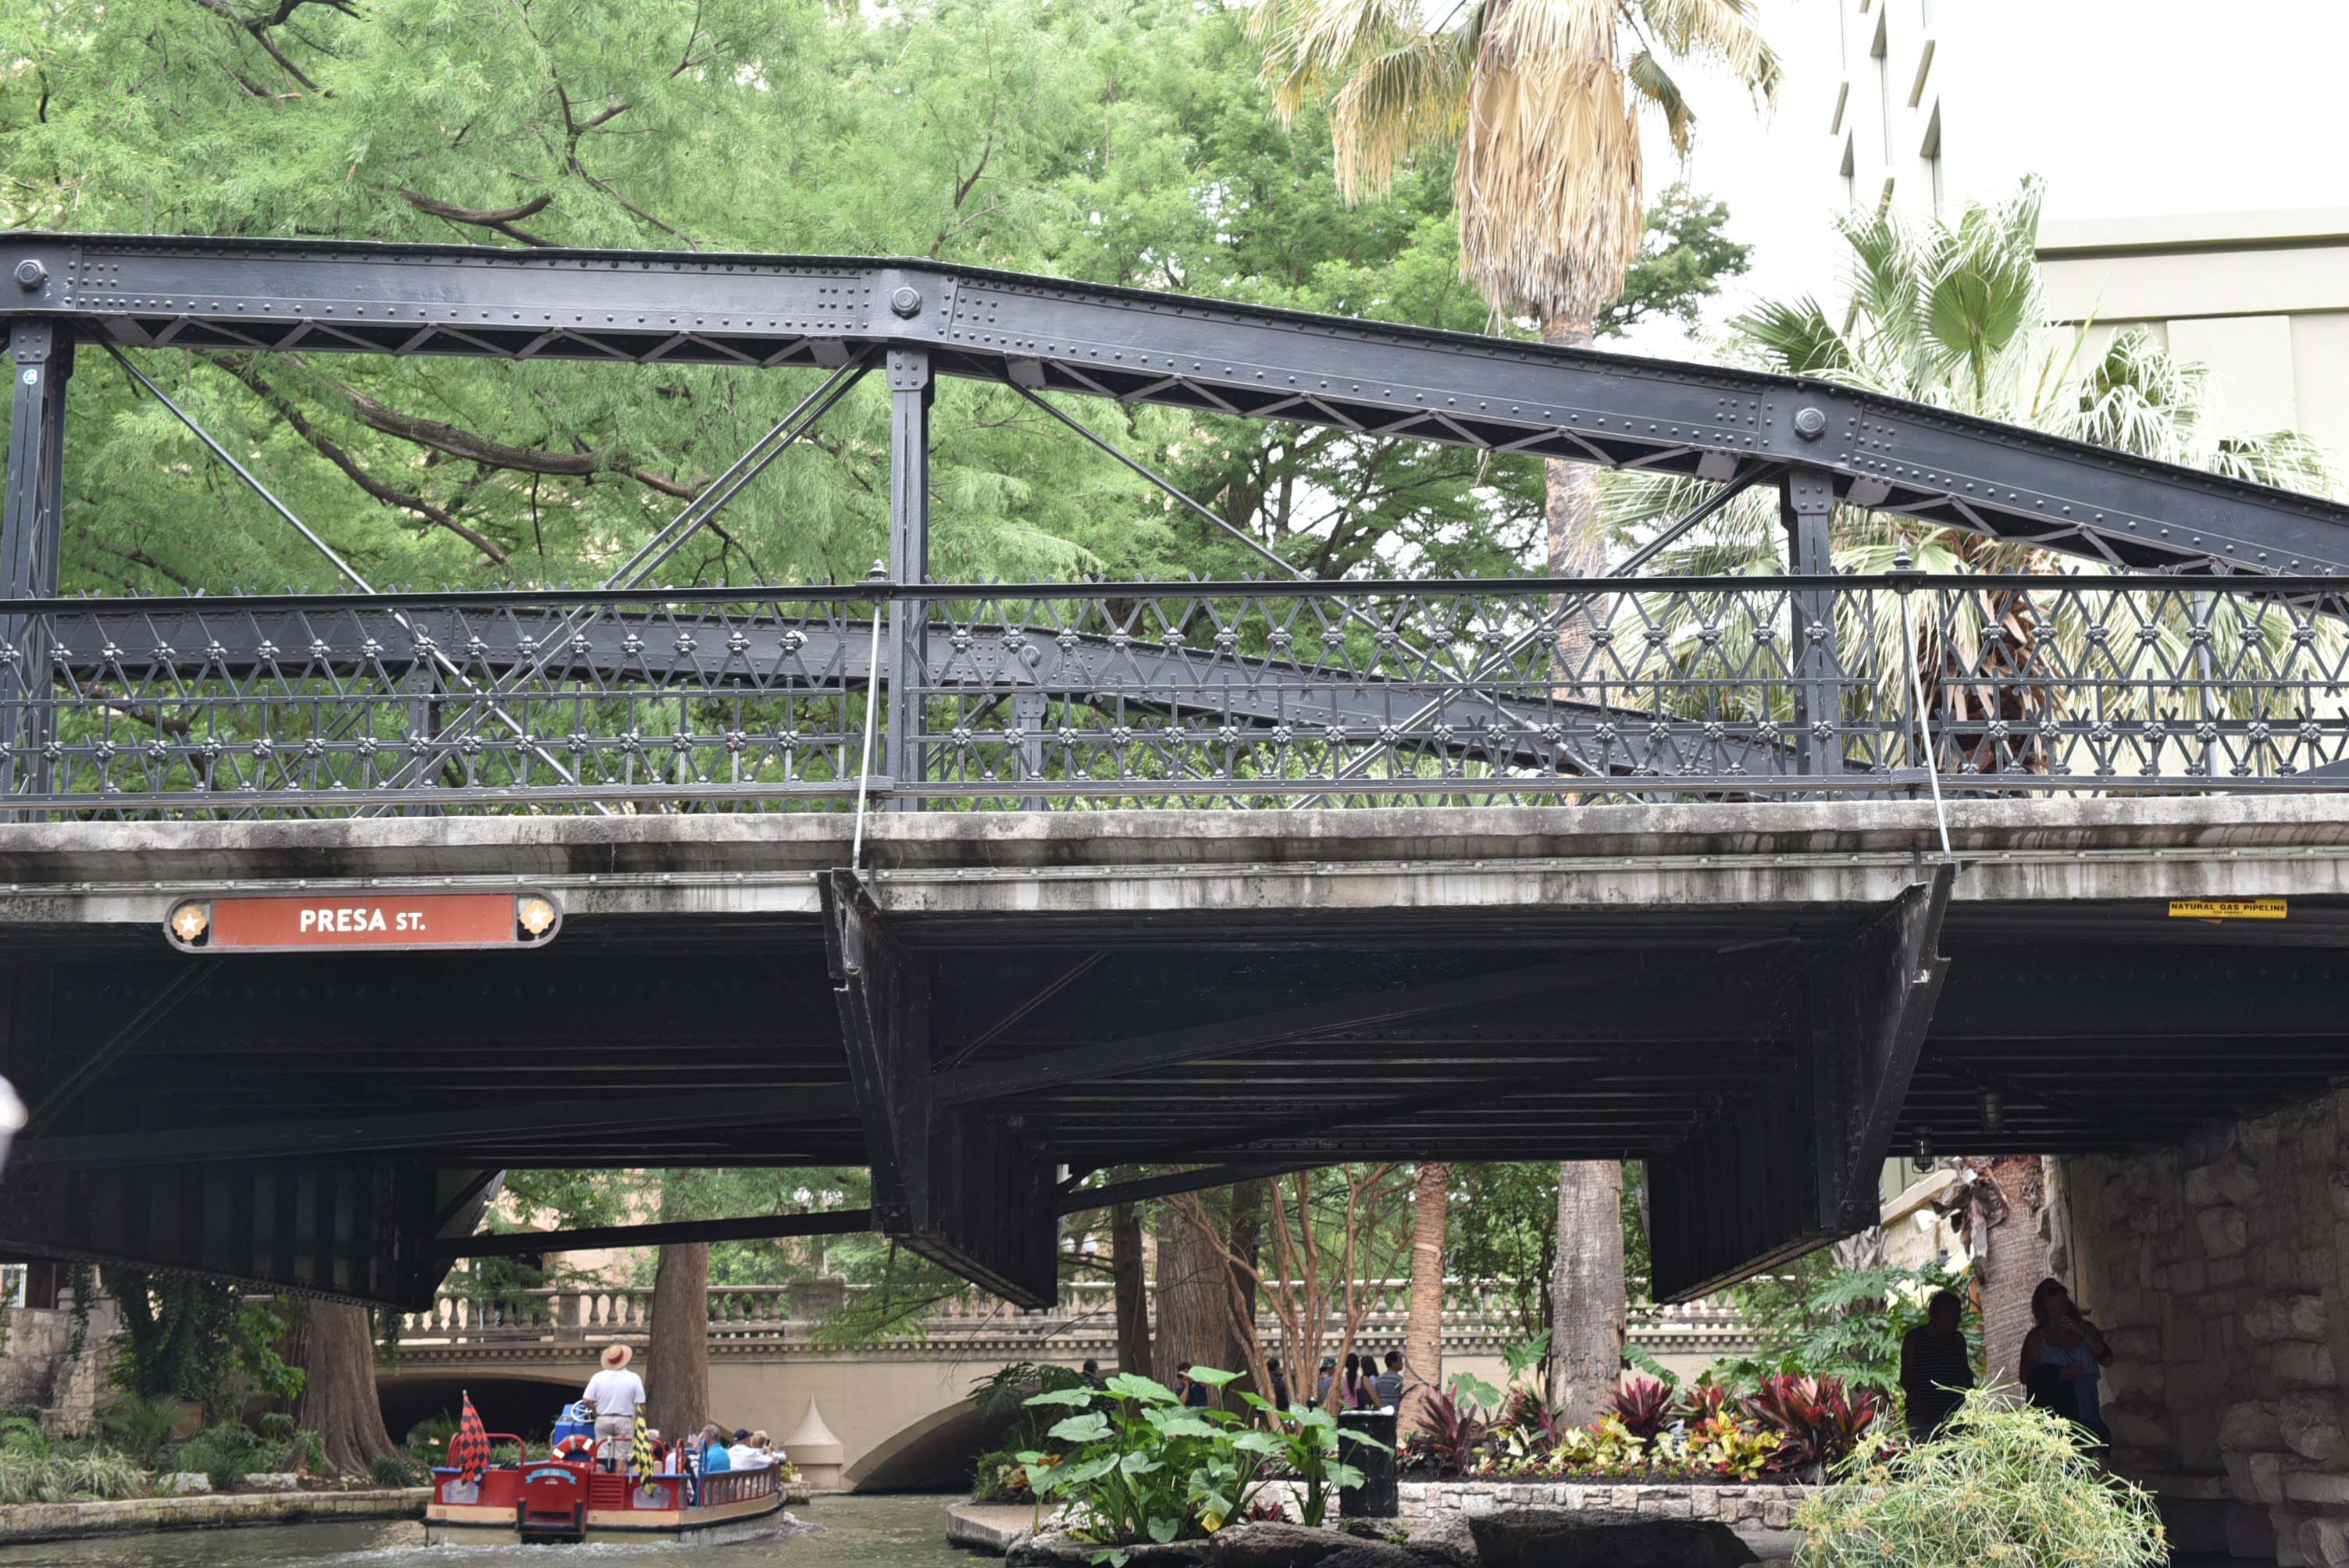 Boat tours in San Antonio : See the post for planning a weekend trip to San Antonio